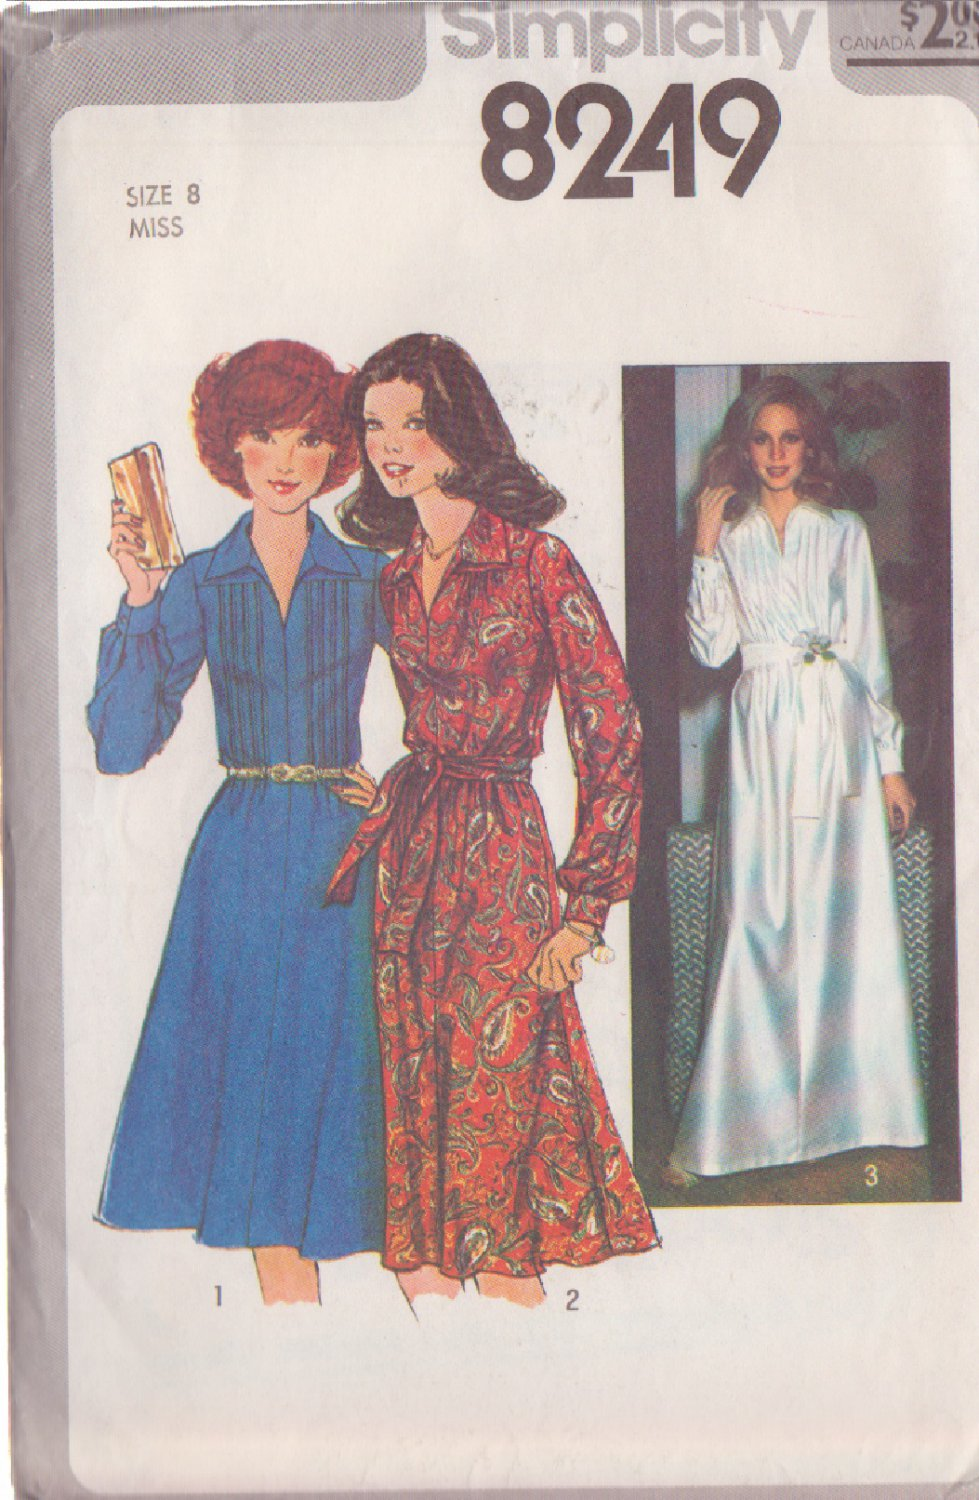 Simplicity pattern 8249, dated 1977, Size 8 Misses' Dress in 3 Variations UNCUT